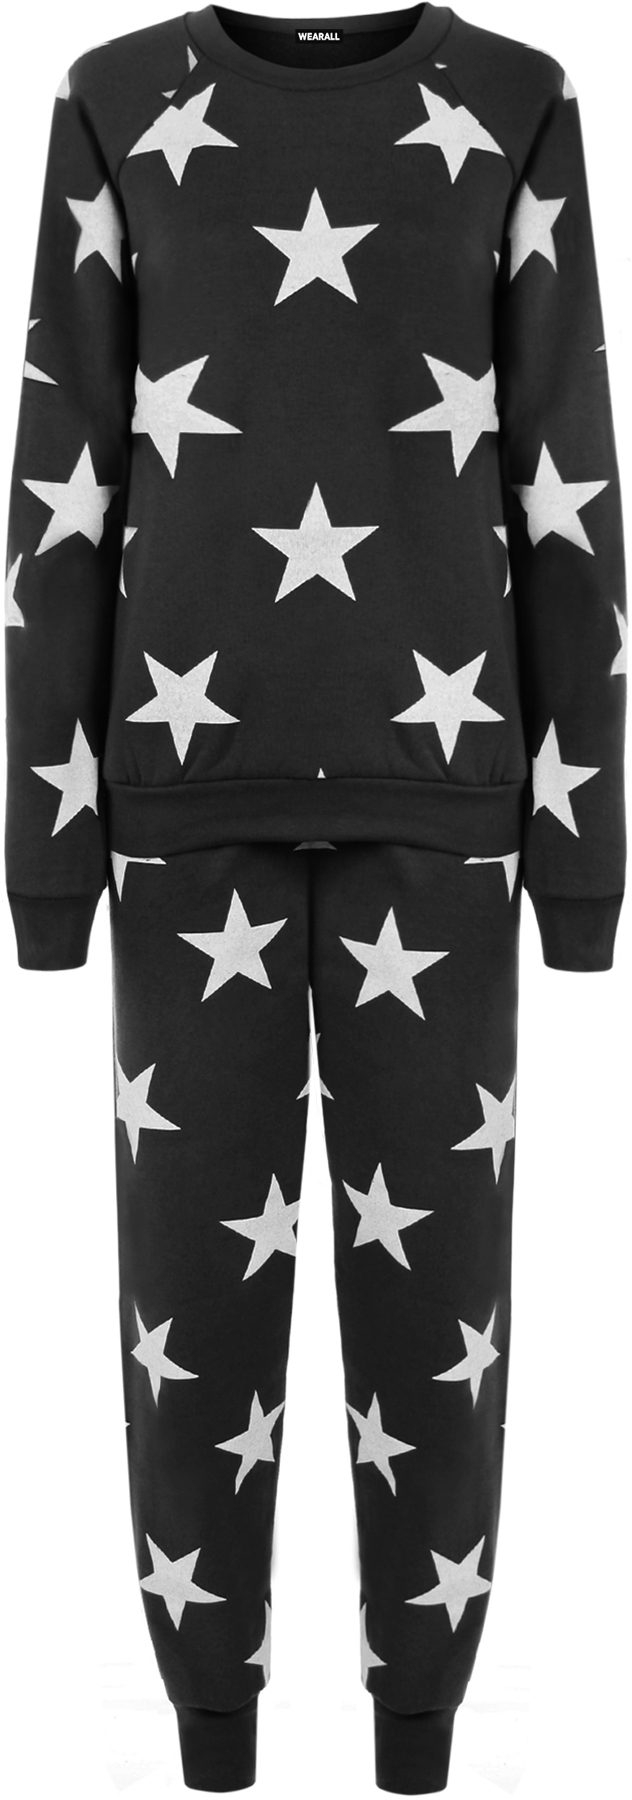 neu damen star druck sweatshirt joggers trainingsanzug. Black Bedroom Furniture Sets. Home Design Ideas